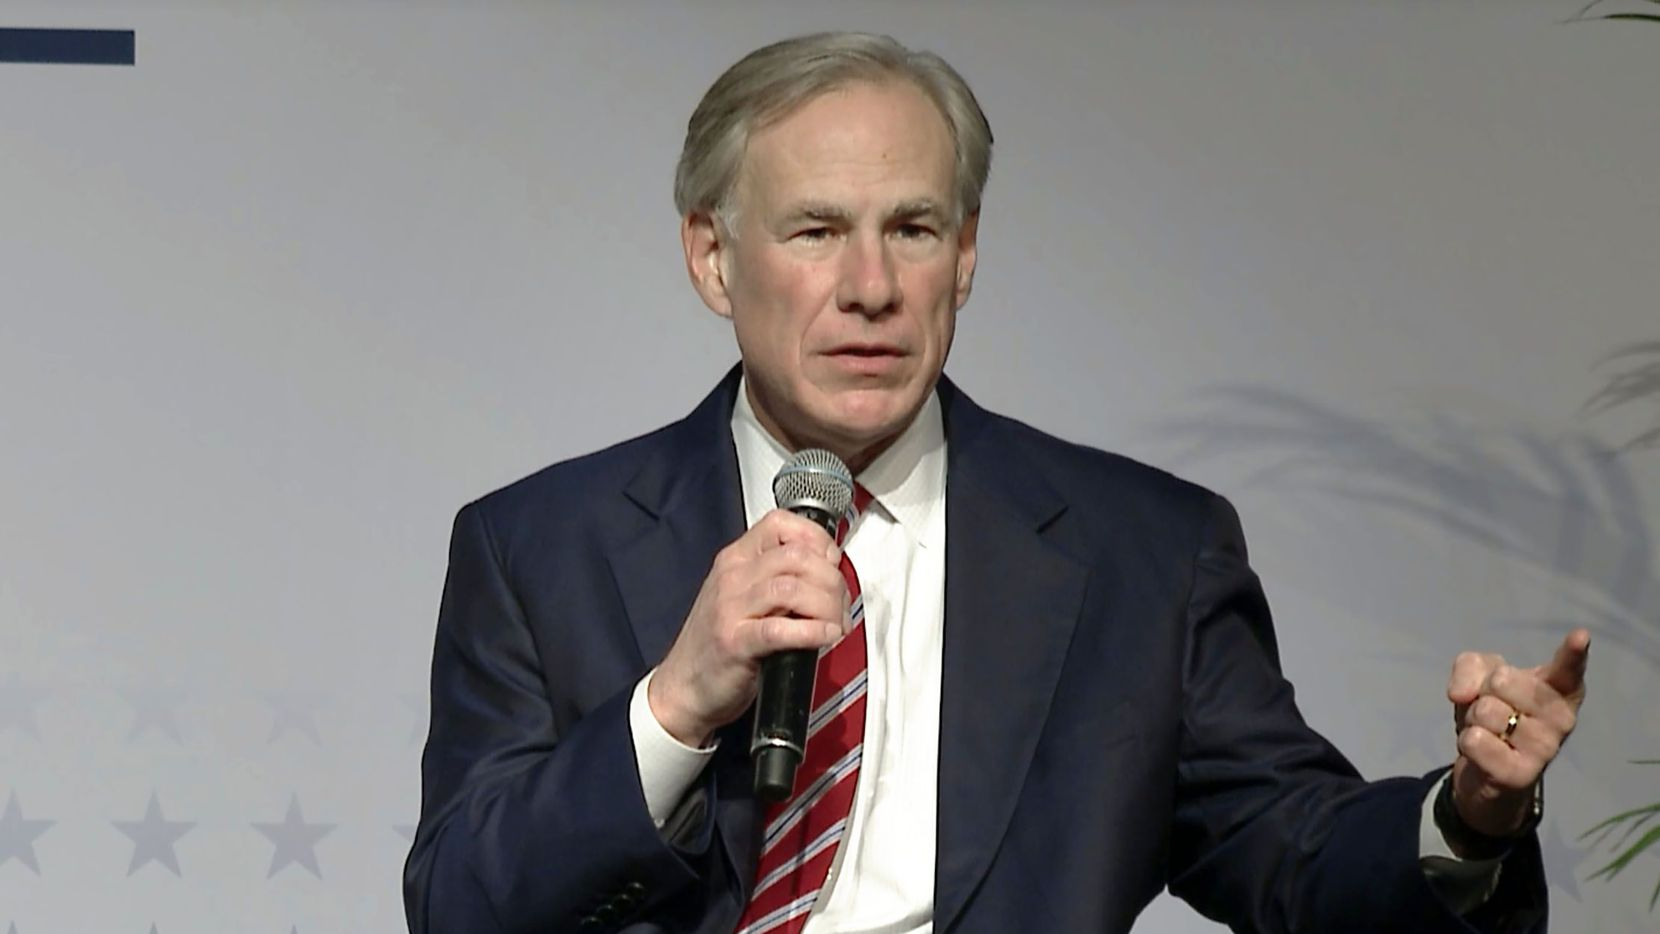 Texas Gov. Greg Abbott, making a COVID-related announcement in March, most recently issued a sweeping executive order that bans mask requirements by local governments and public school systems.